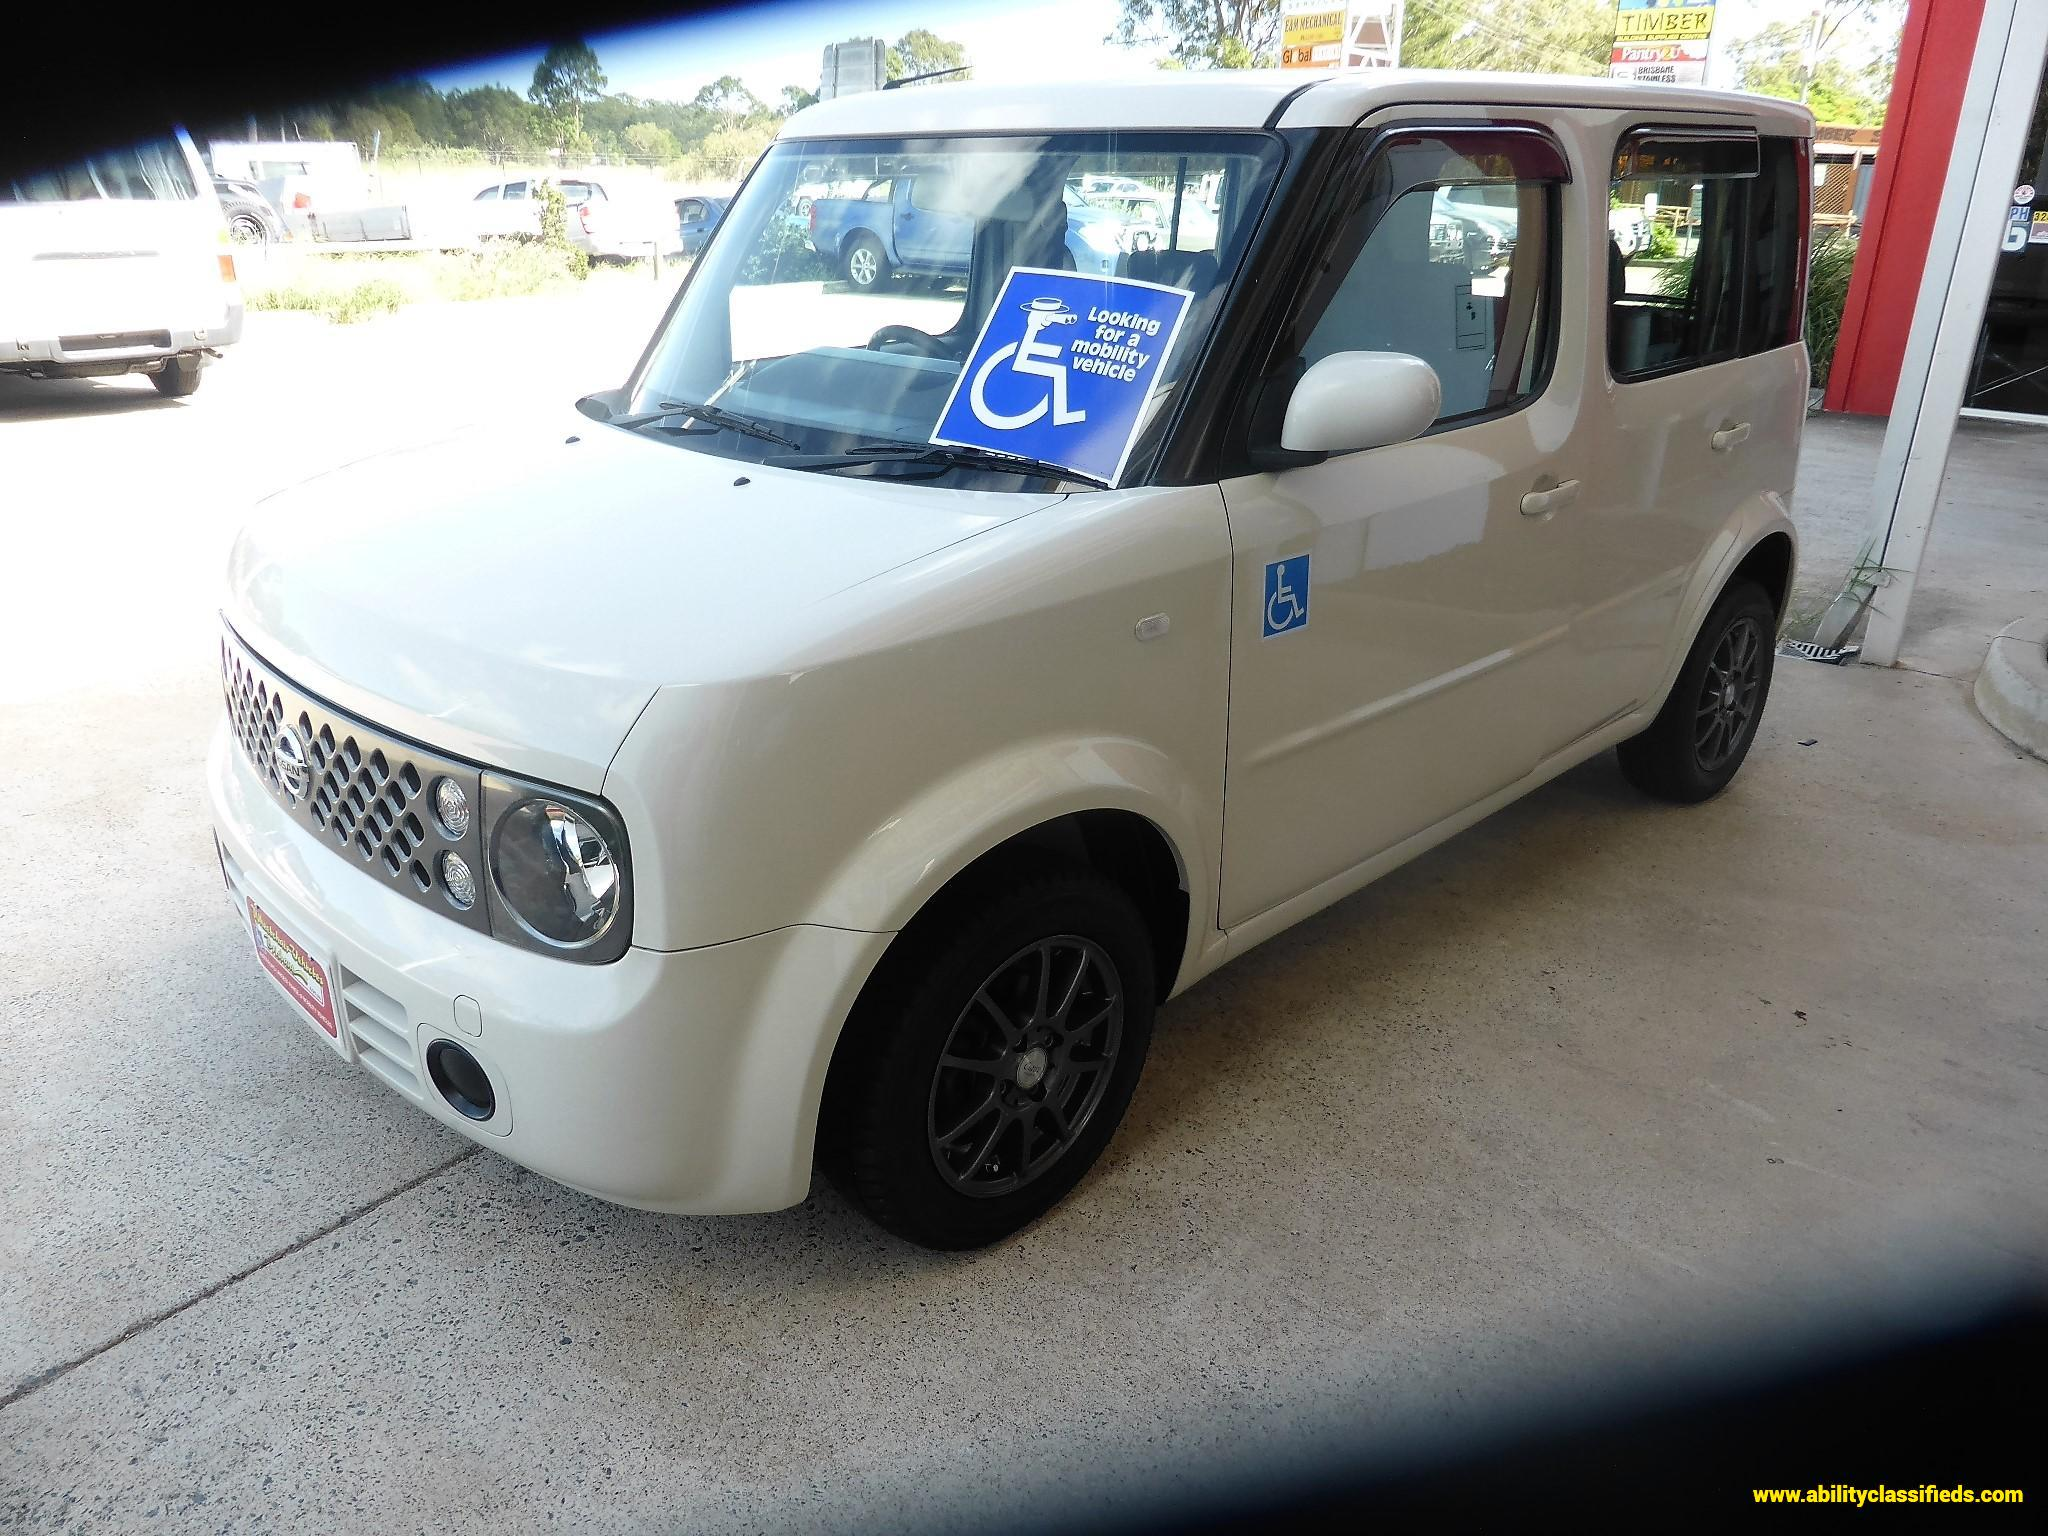 2005 Nissan Cube Rear Wheelchair or Scooter Entry